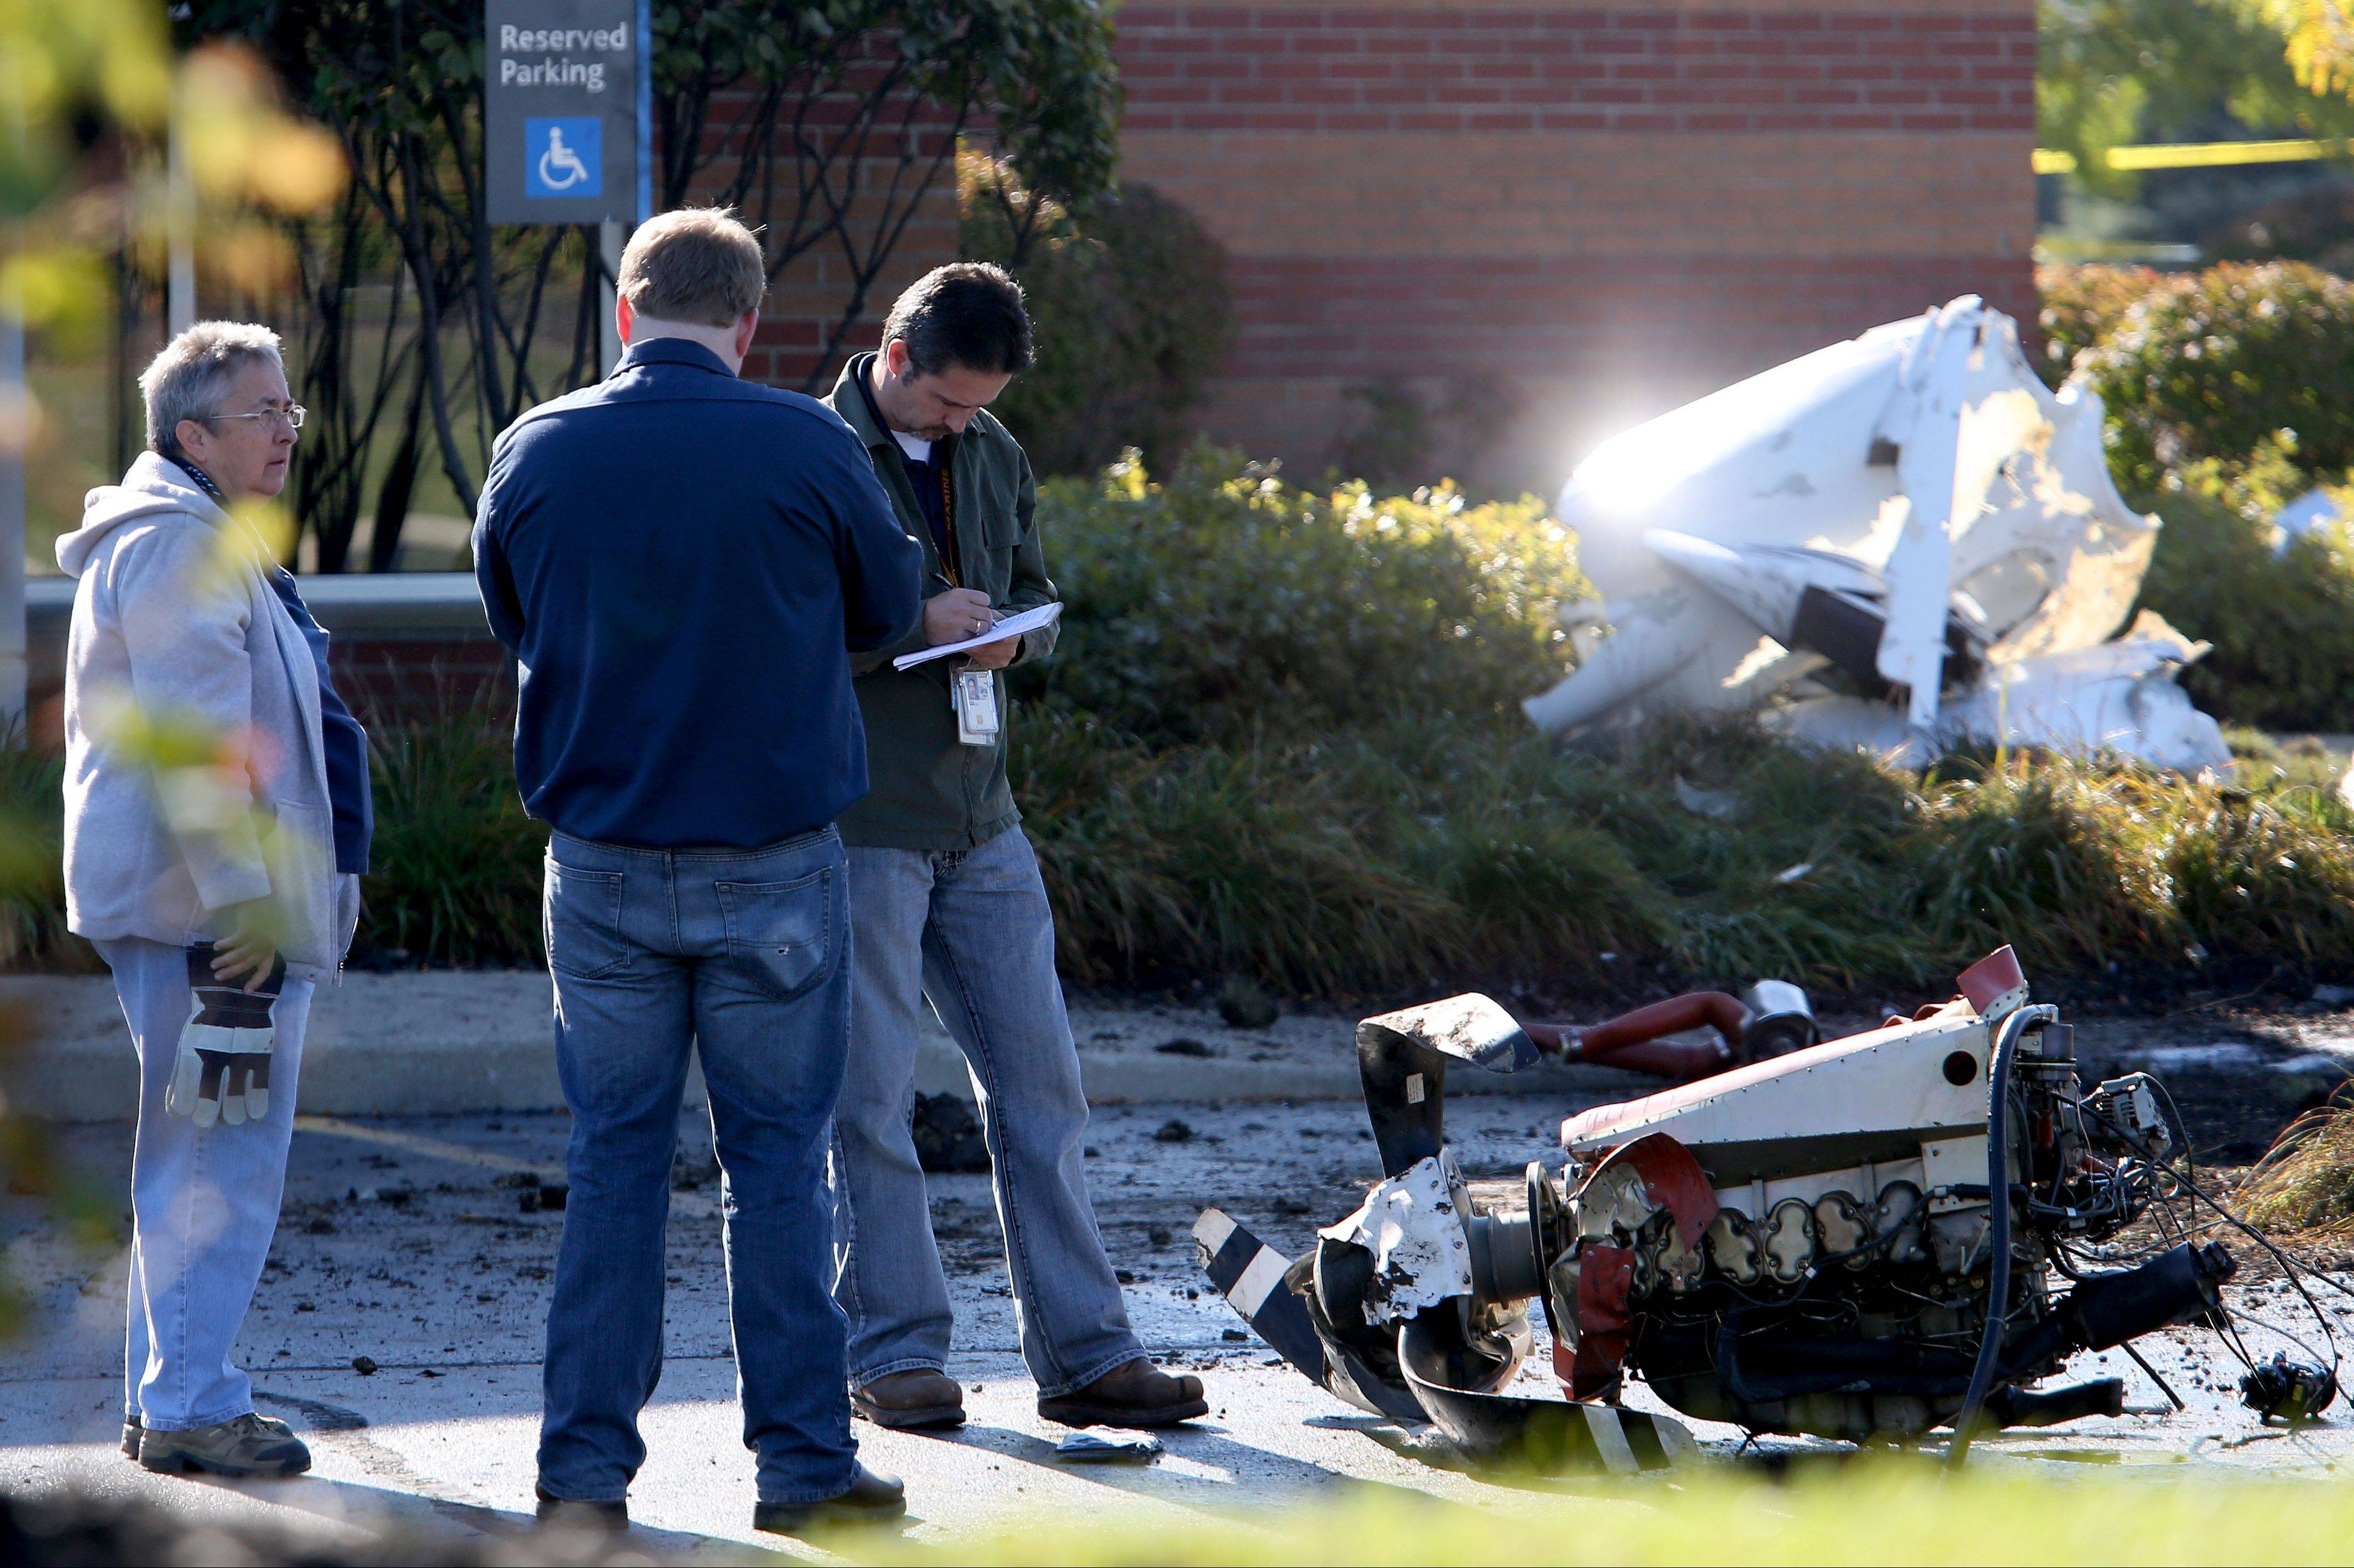 FAA investigators on Thursday look over the wreckage of a small plane that crashed in Bolingbrook, killing a doctor and his wife from Kentucky.